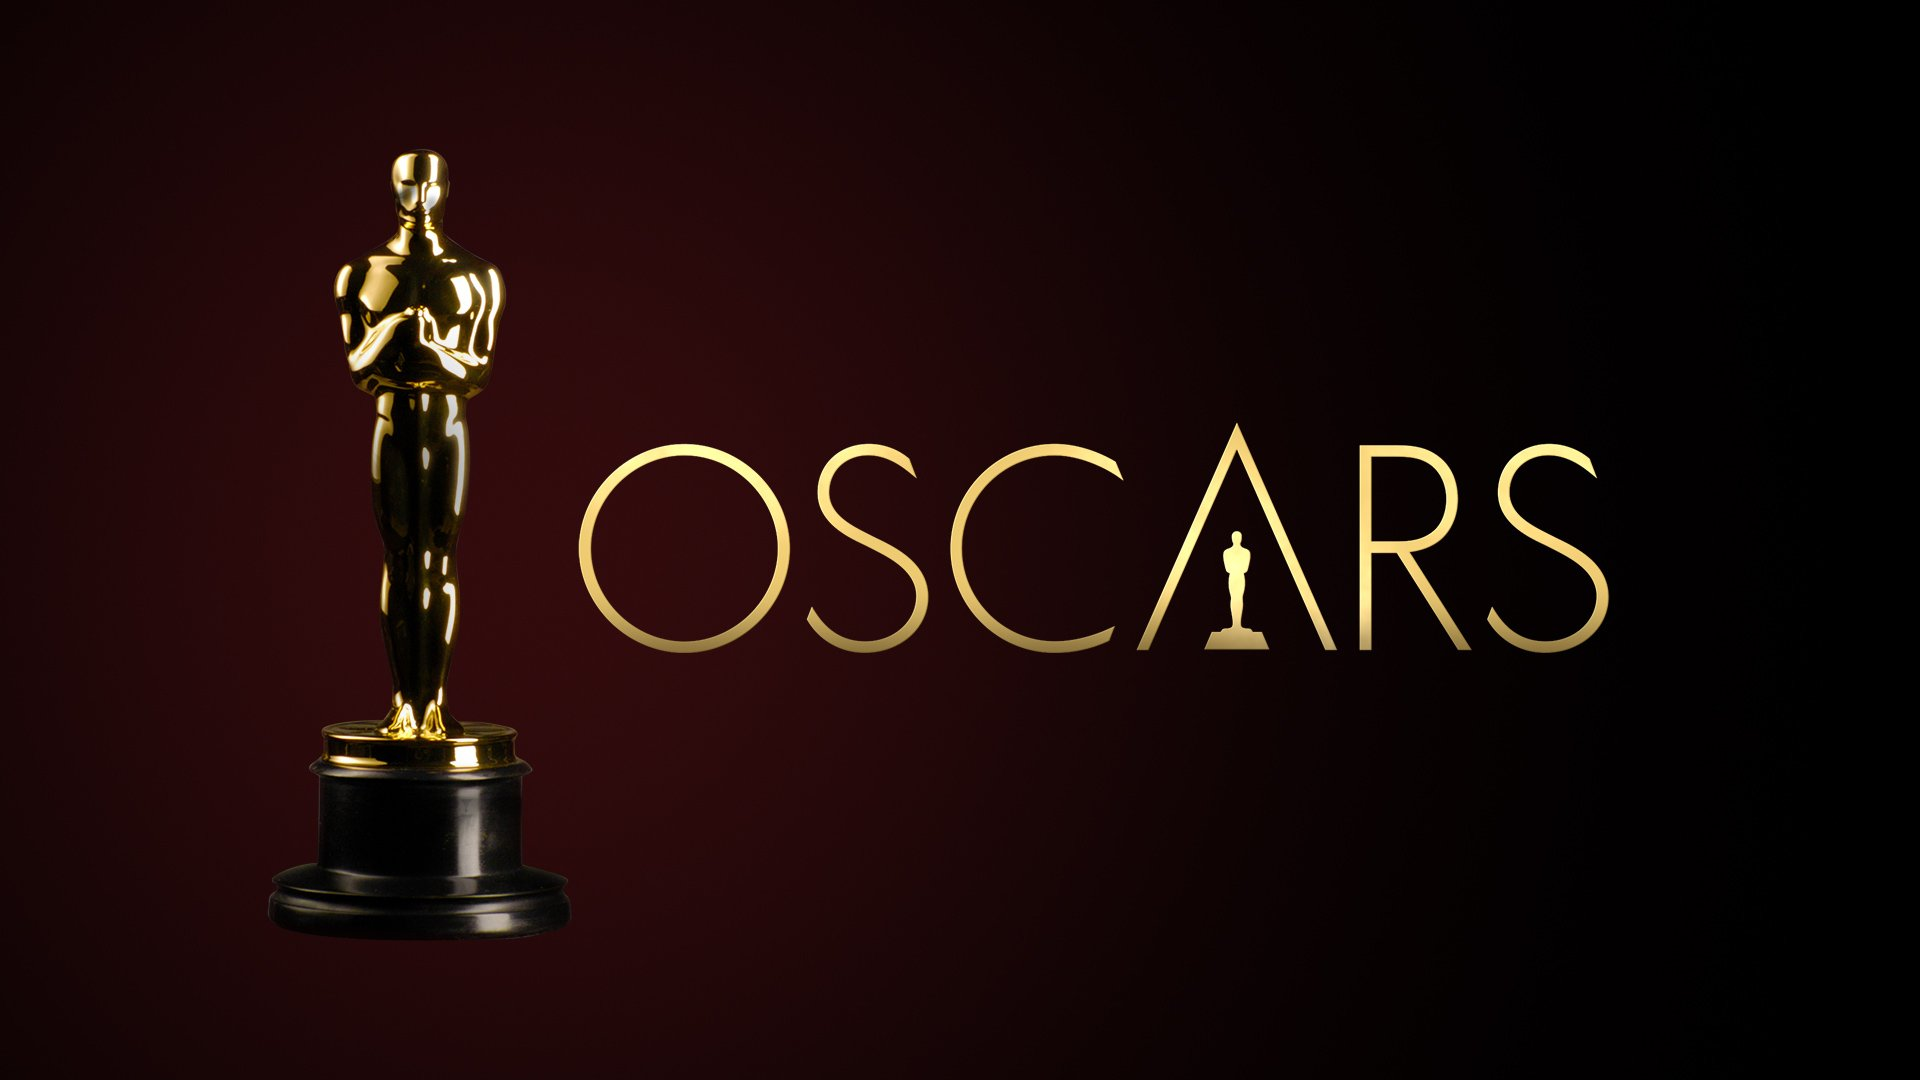 Oscar Nominations 2020: The Complete List - 92nd Academy Awards